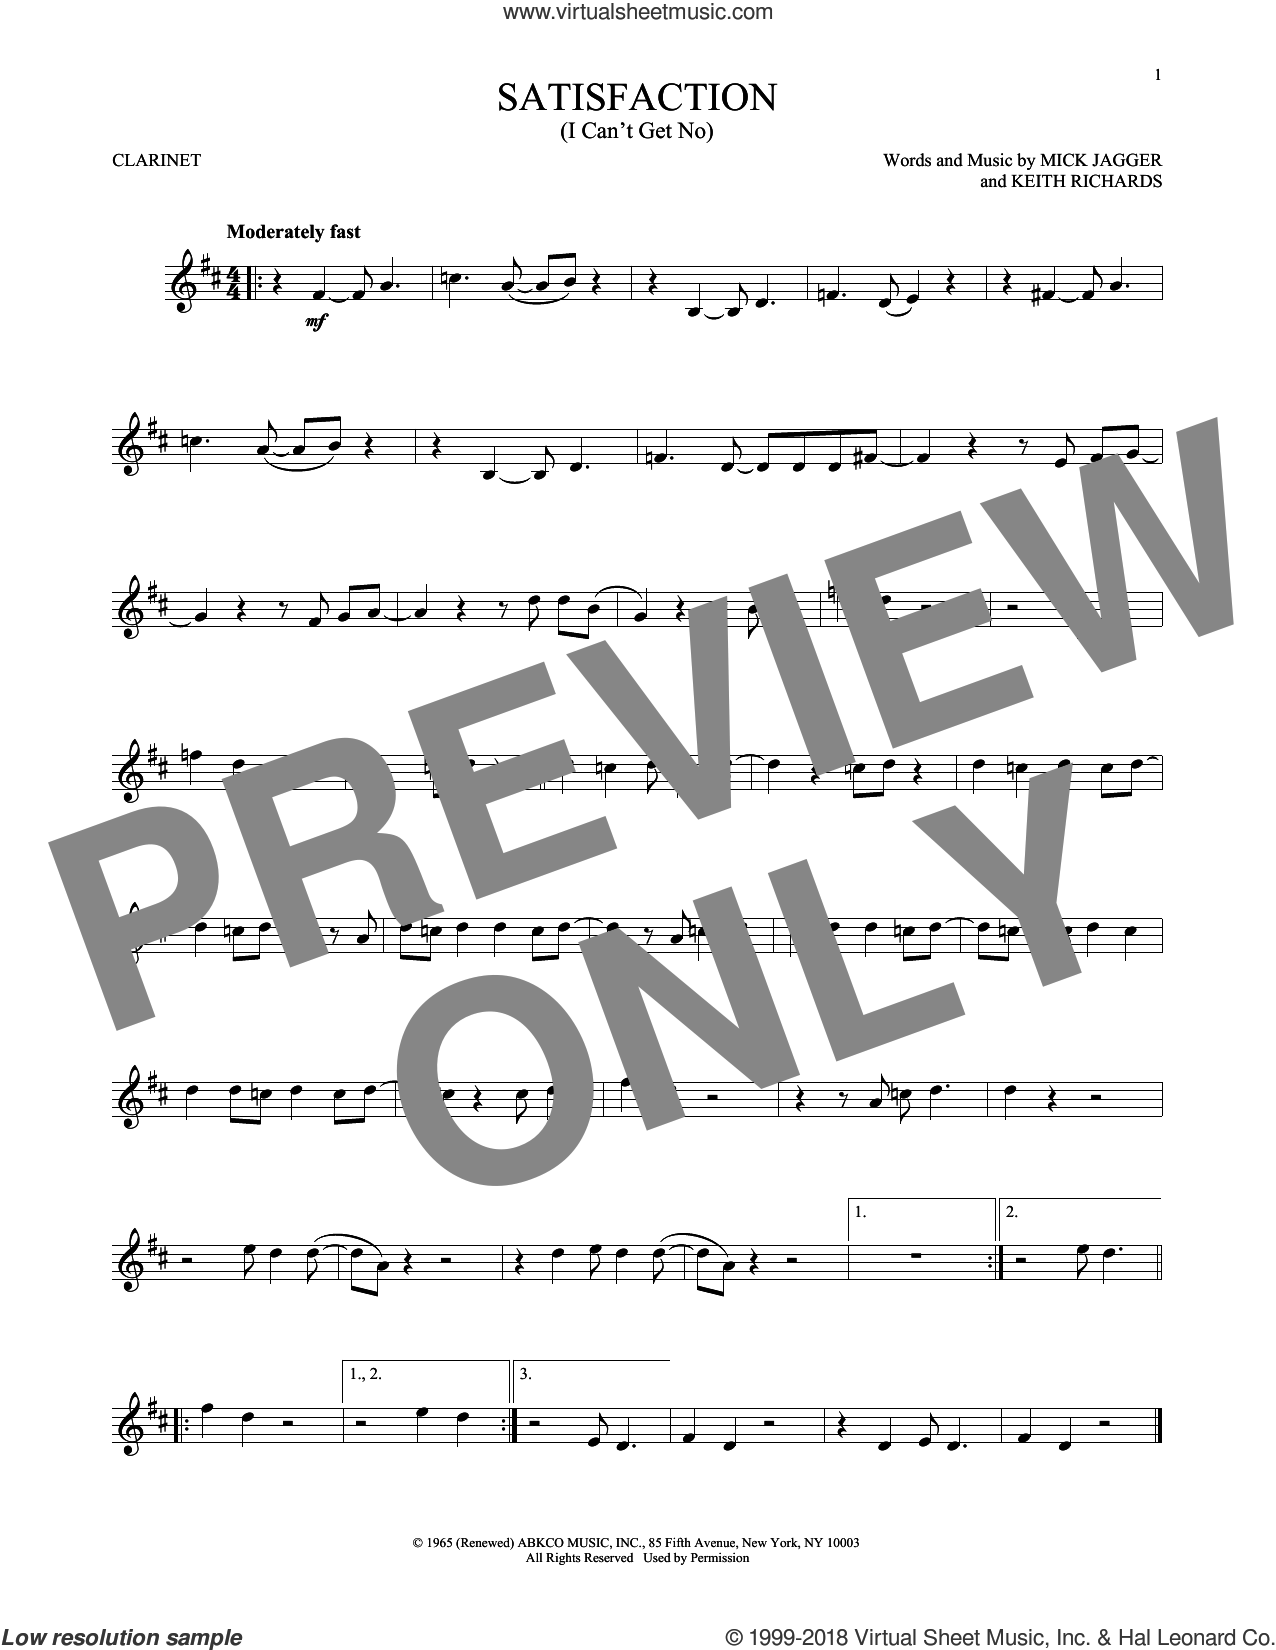 (I Can't Get No) Satisfaction sheet music for clarinet solo by The Rolling Stones, Keith Richards and Mick Jagger, intermediate skill level